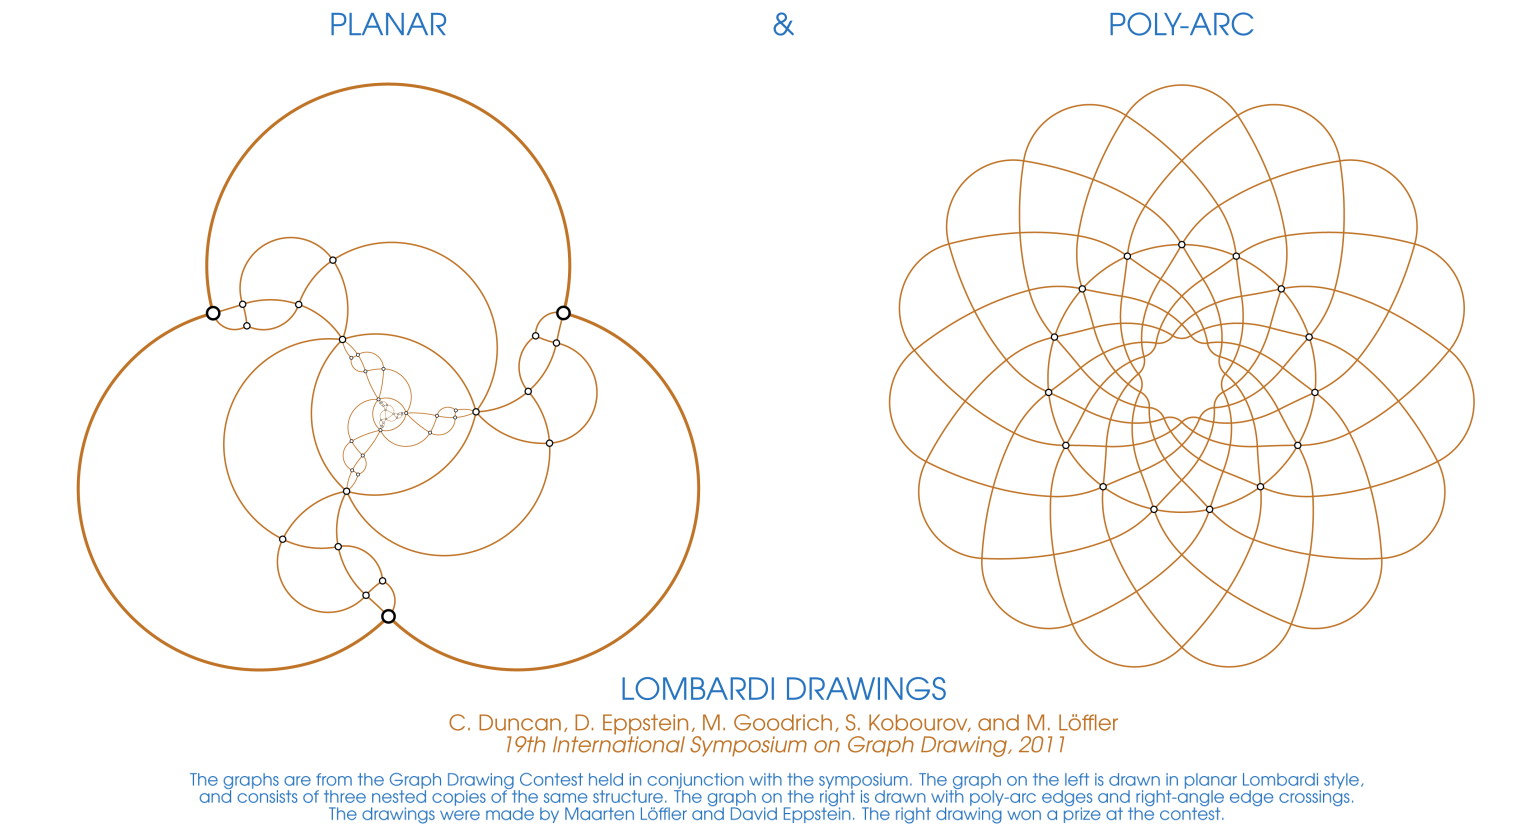 Lombardi Drawings from the competition held at the International Symposium on Graph Drawing (2011)